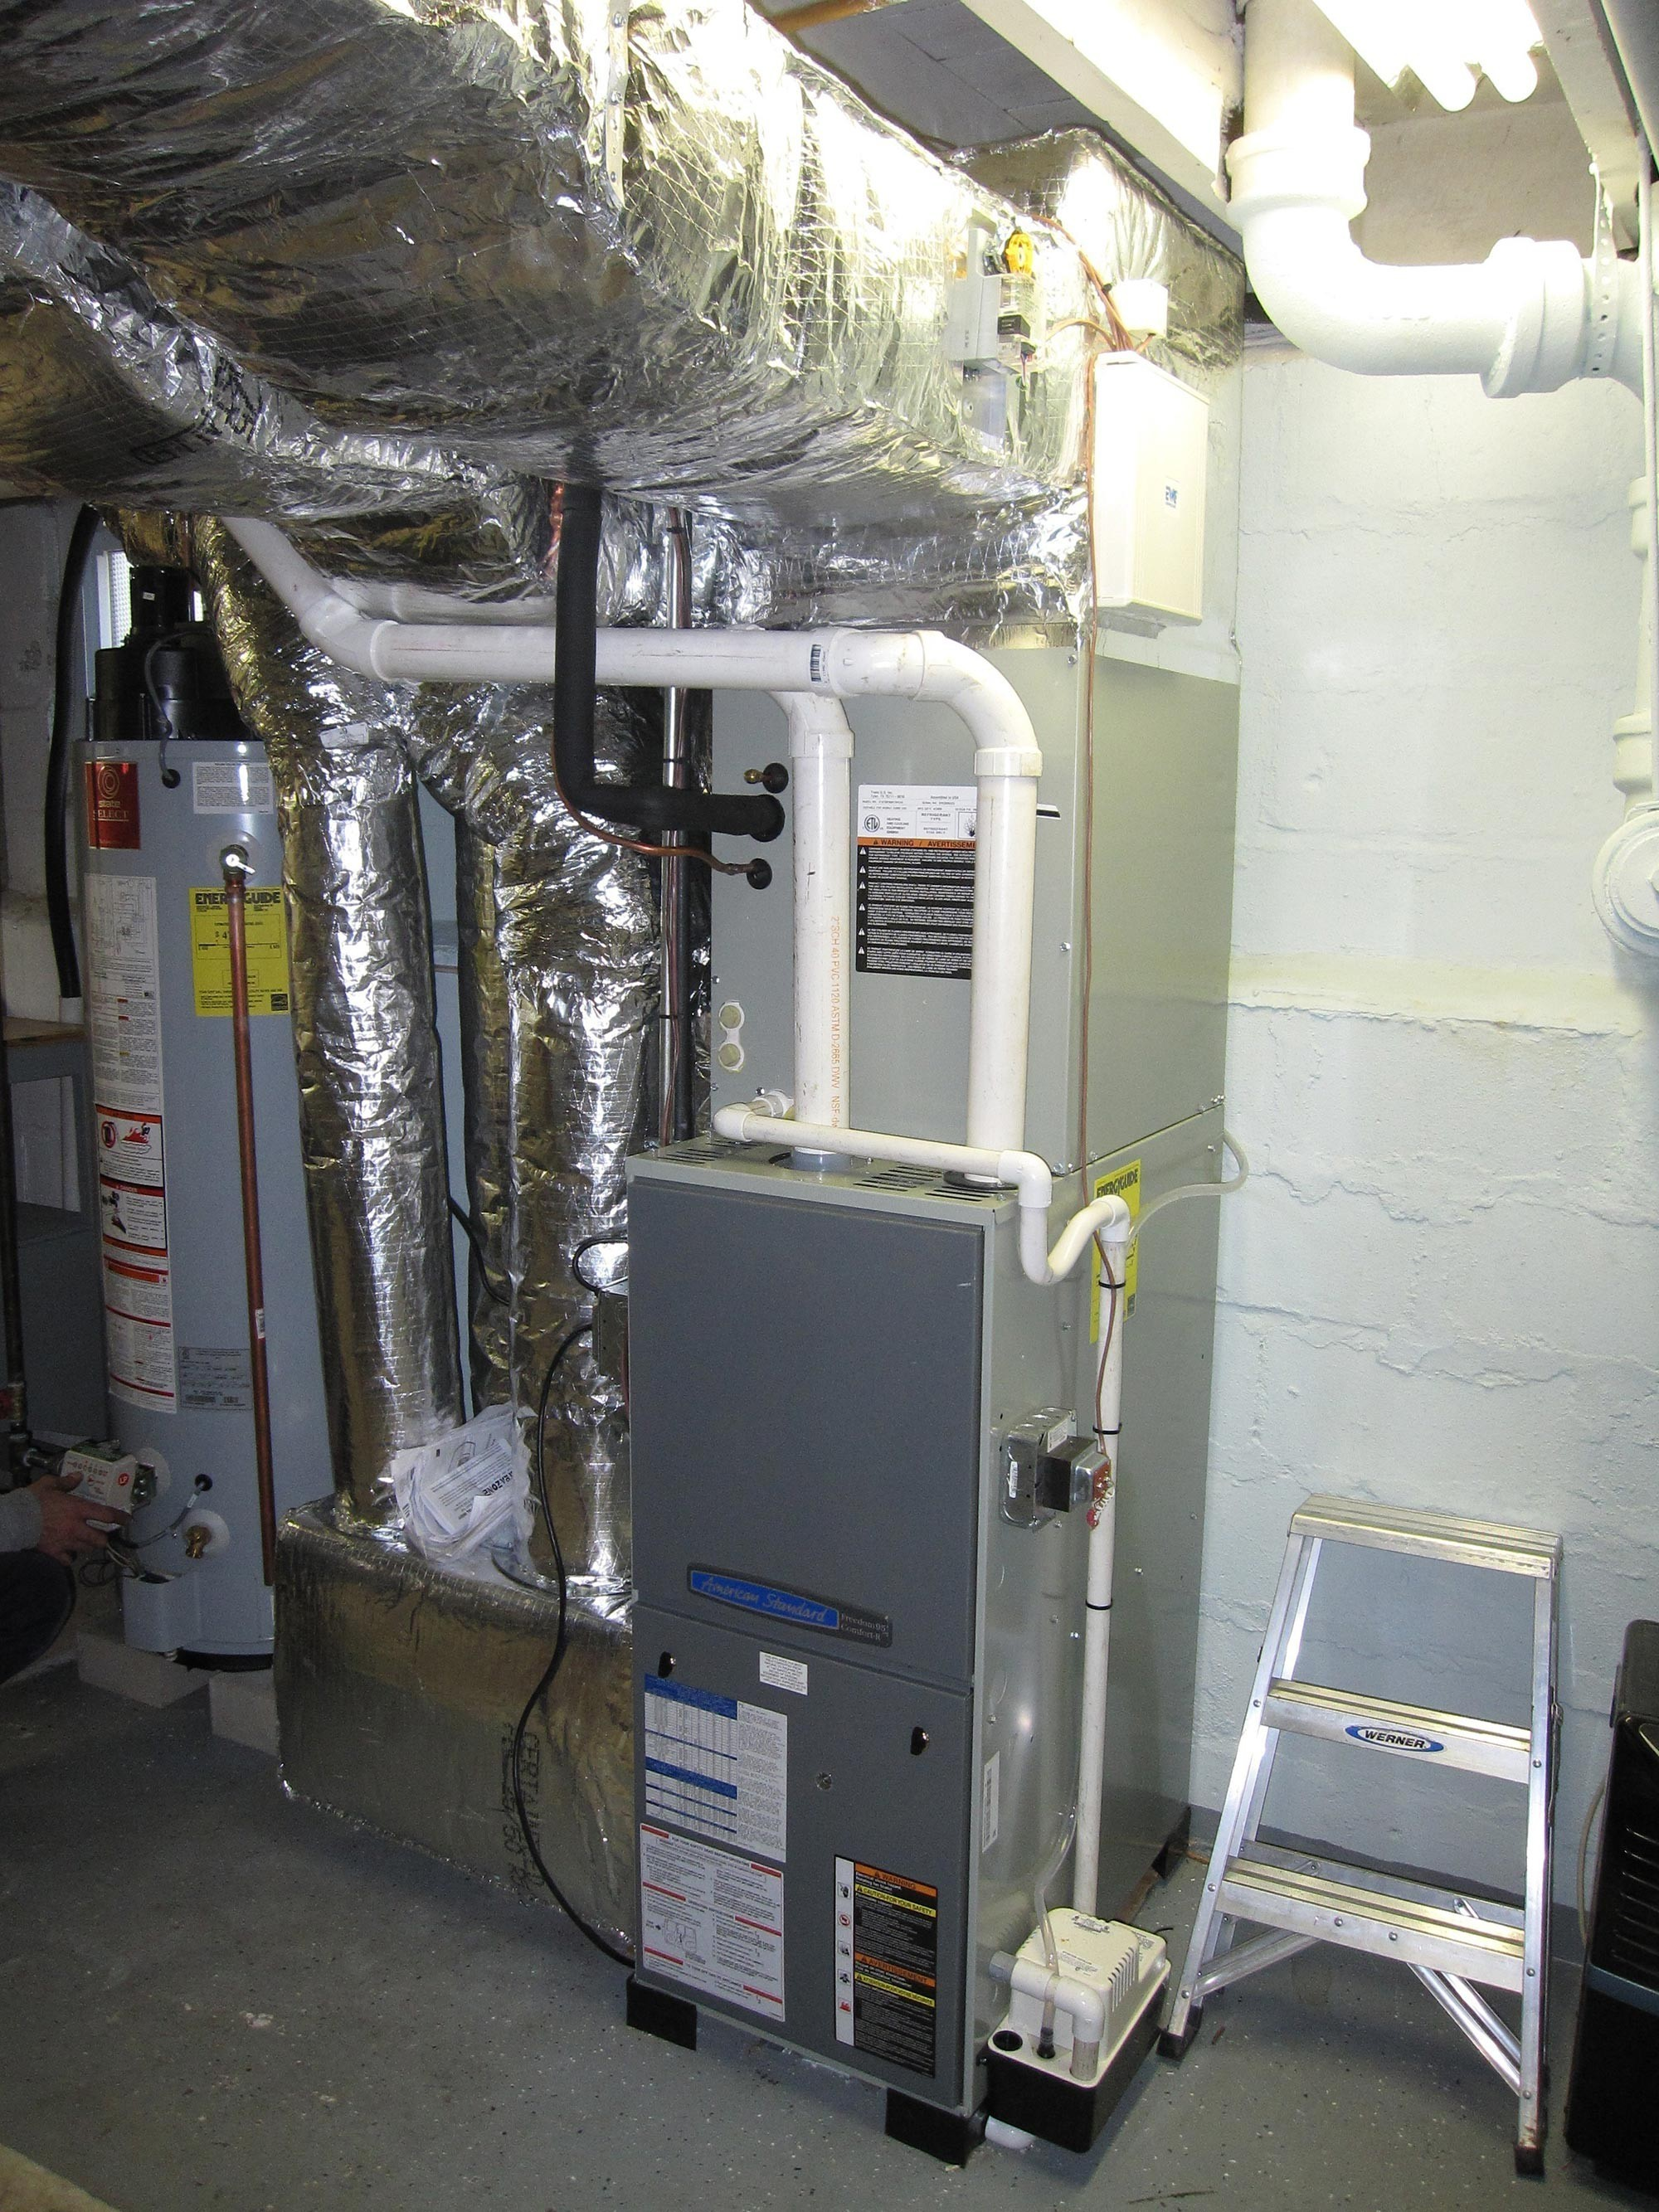 Gas Furnace With Add On Ac System And Hot Water Tank